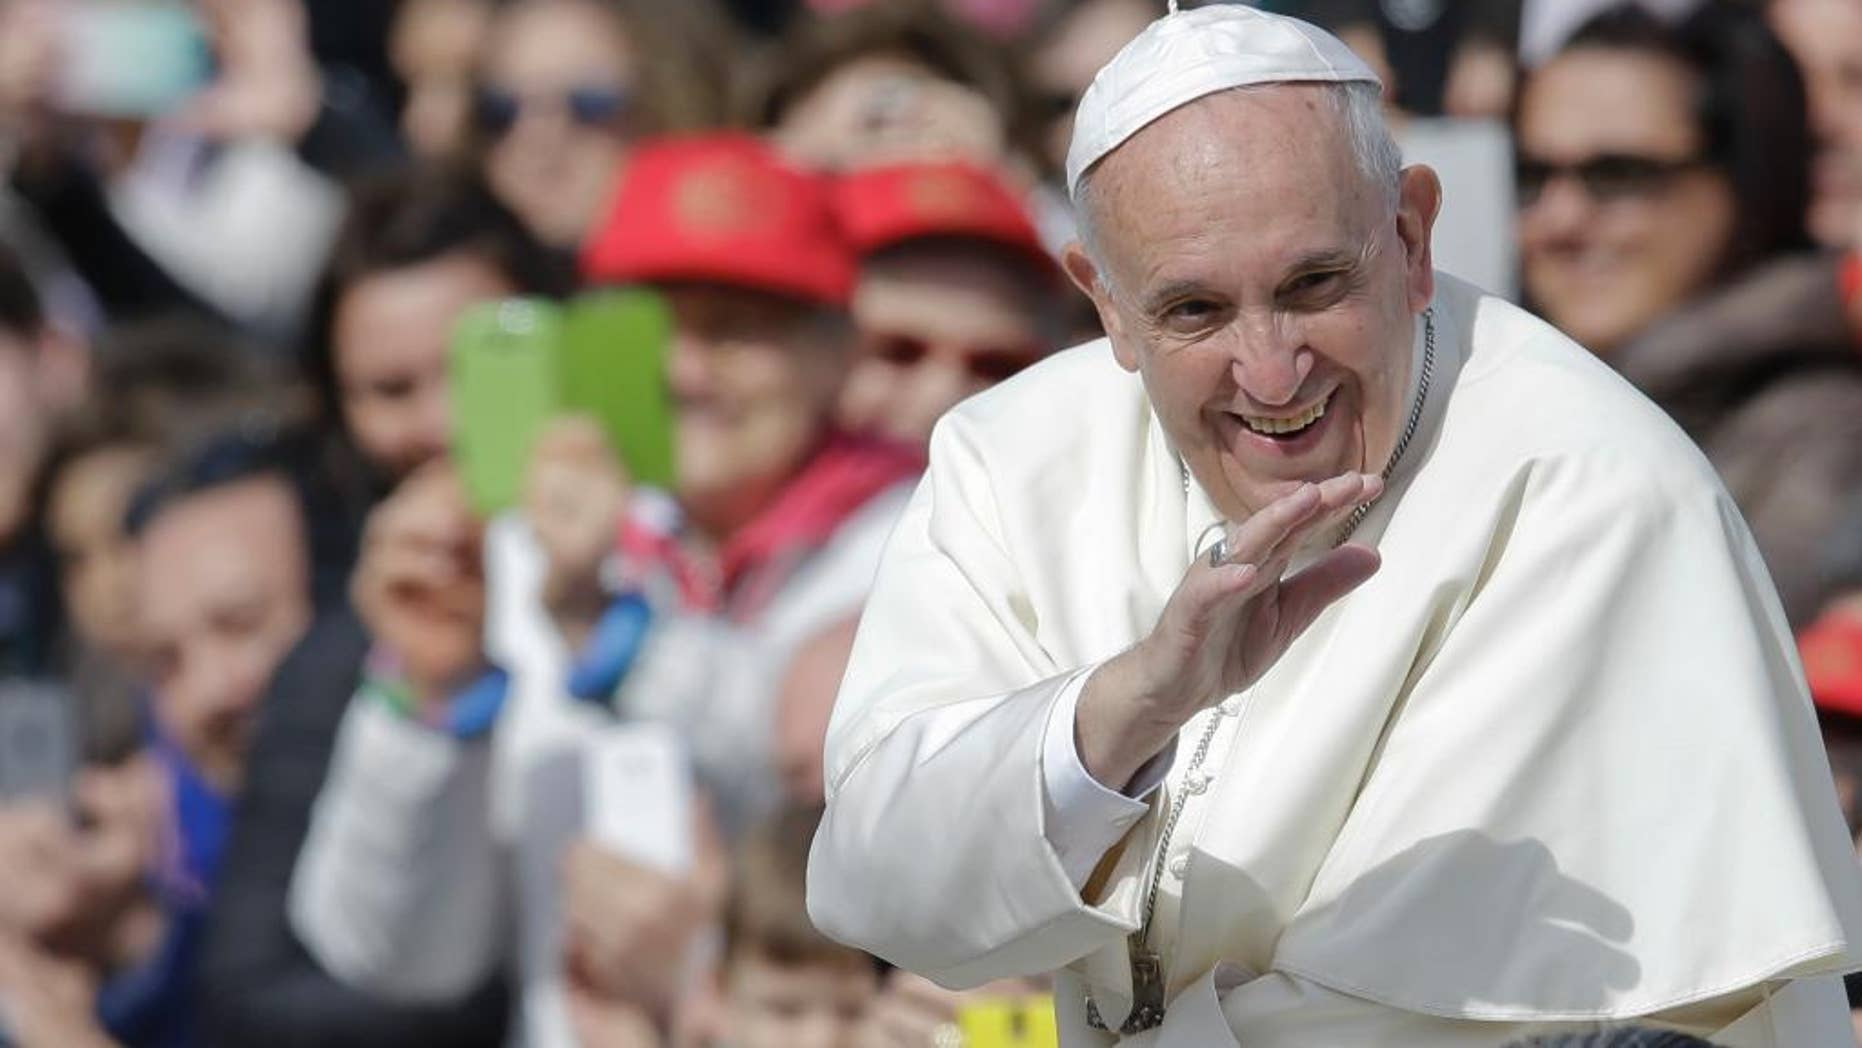 Pope Francis smiles as he blesses faithful upon his arrival in St. Peter's Square to attend a jubilee audience at the Vatican, Saturday, April 9, 2016. Pope Francis said Friday that Catholics should look to their own consciences rather than rely exclusively on church rules to negotiate the complexities of sex, marriage and family life, demanding the church shift emphasis from doctrine to mercy in confronting some of the thorniest issues facing the faithful. (AP Photo/Gregorio Borgia)